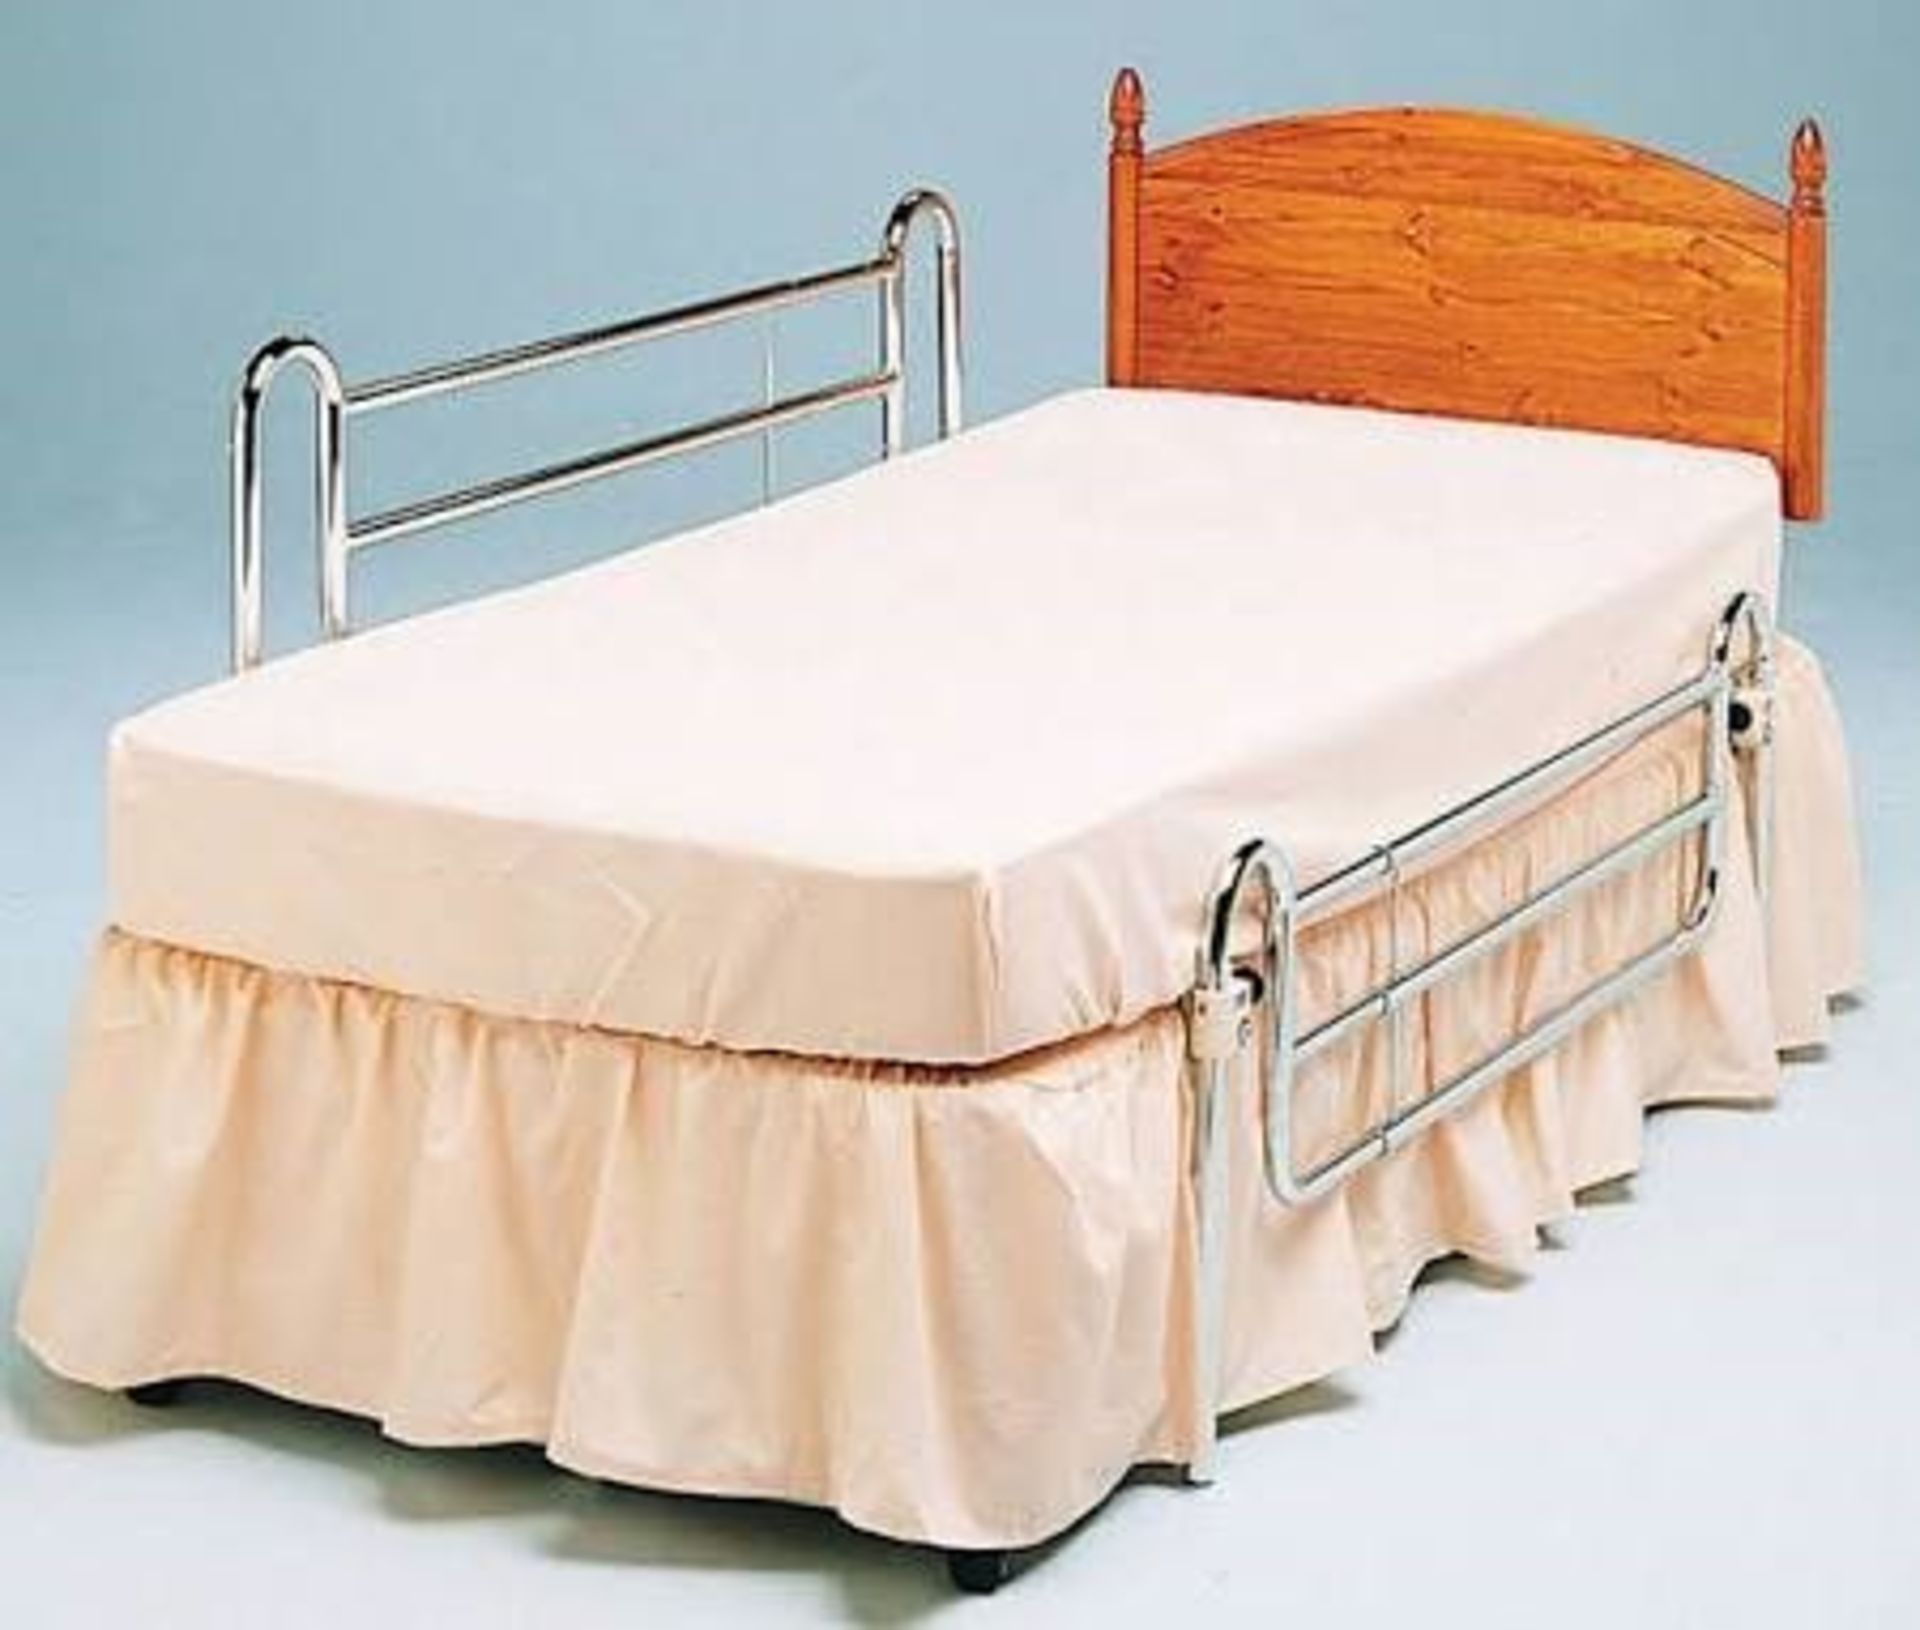 Lot 797 - ME : 1 AS NEW BOXED STANDARD BED RAILS FOR DIVAN BED / RRP £141.71 (VIEWING HIGHLY RECOMMENDED)